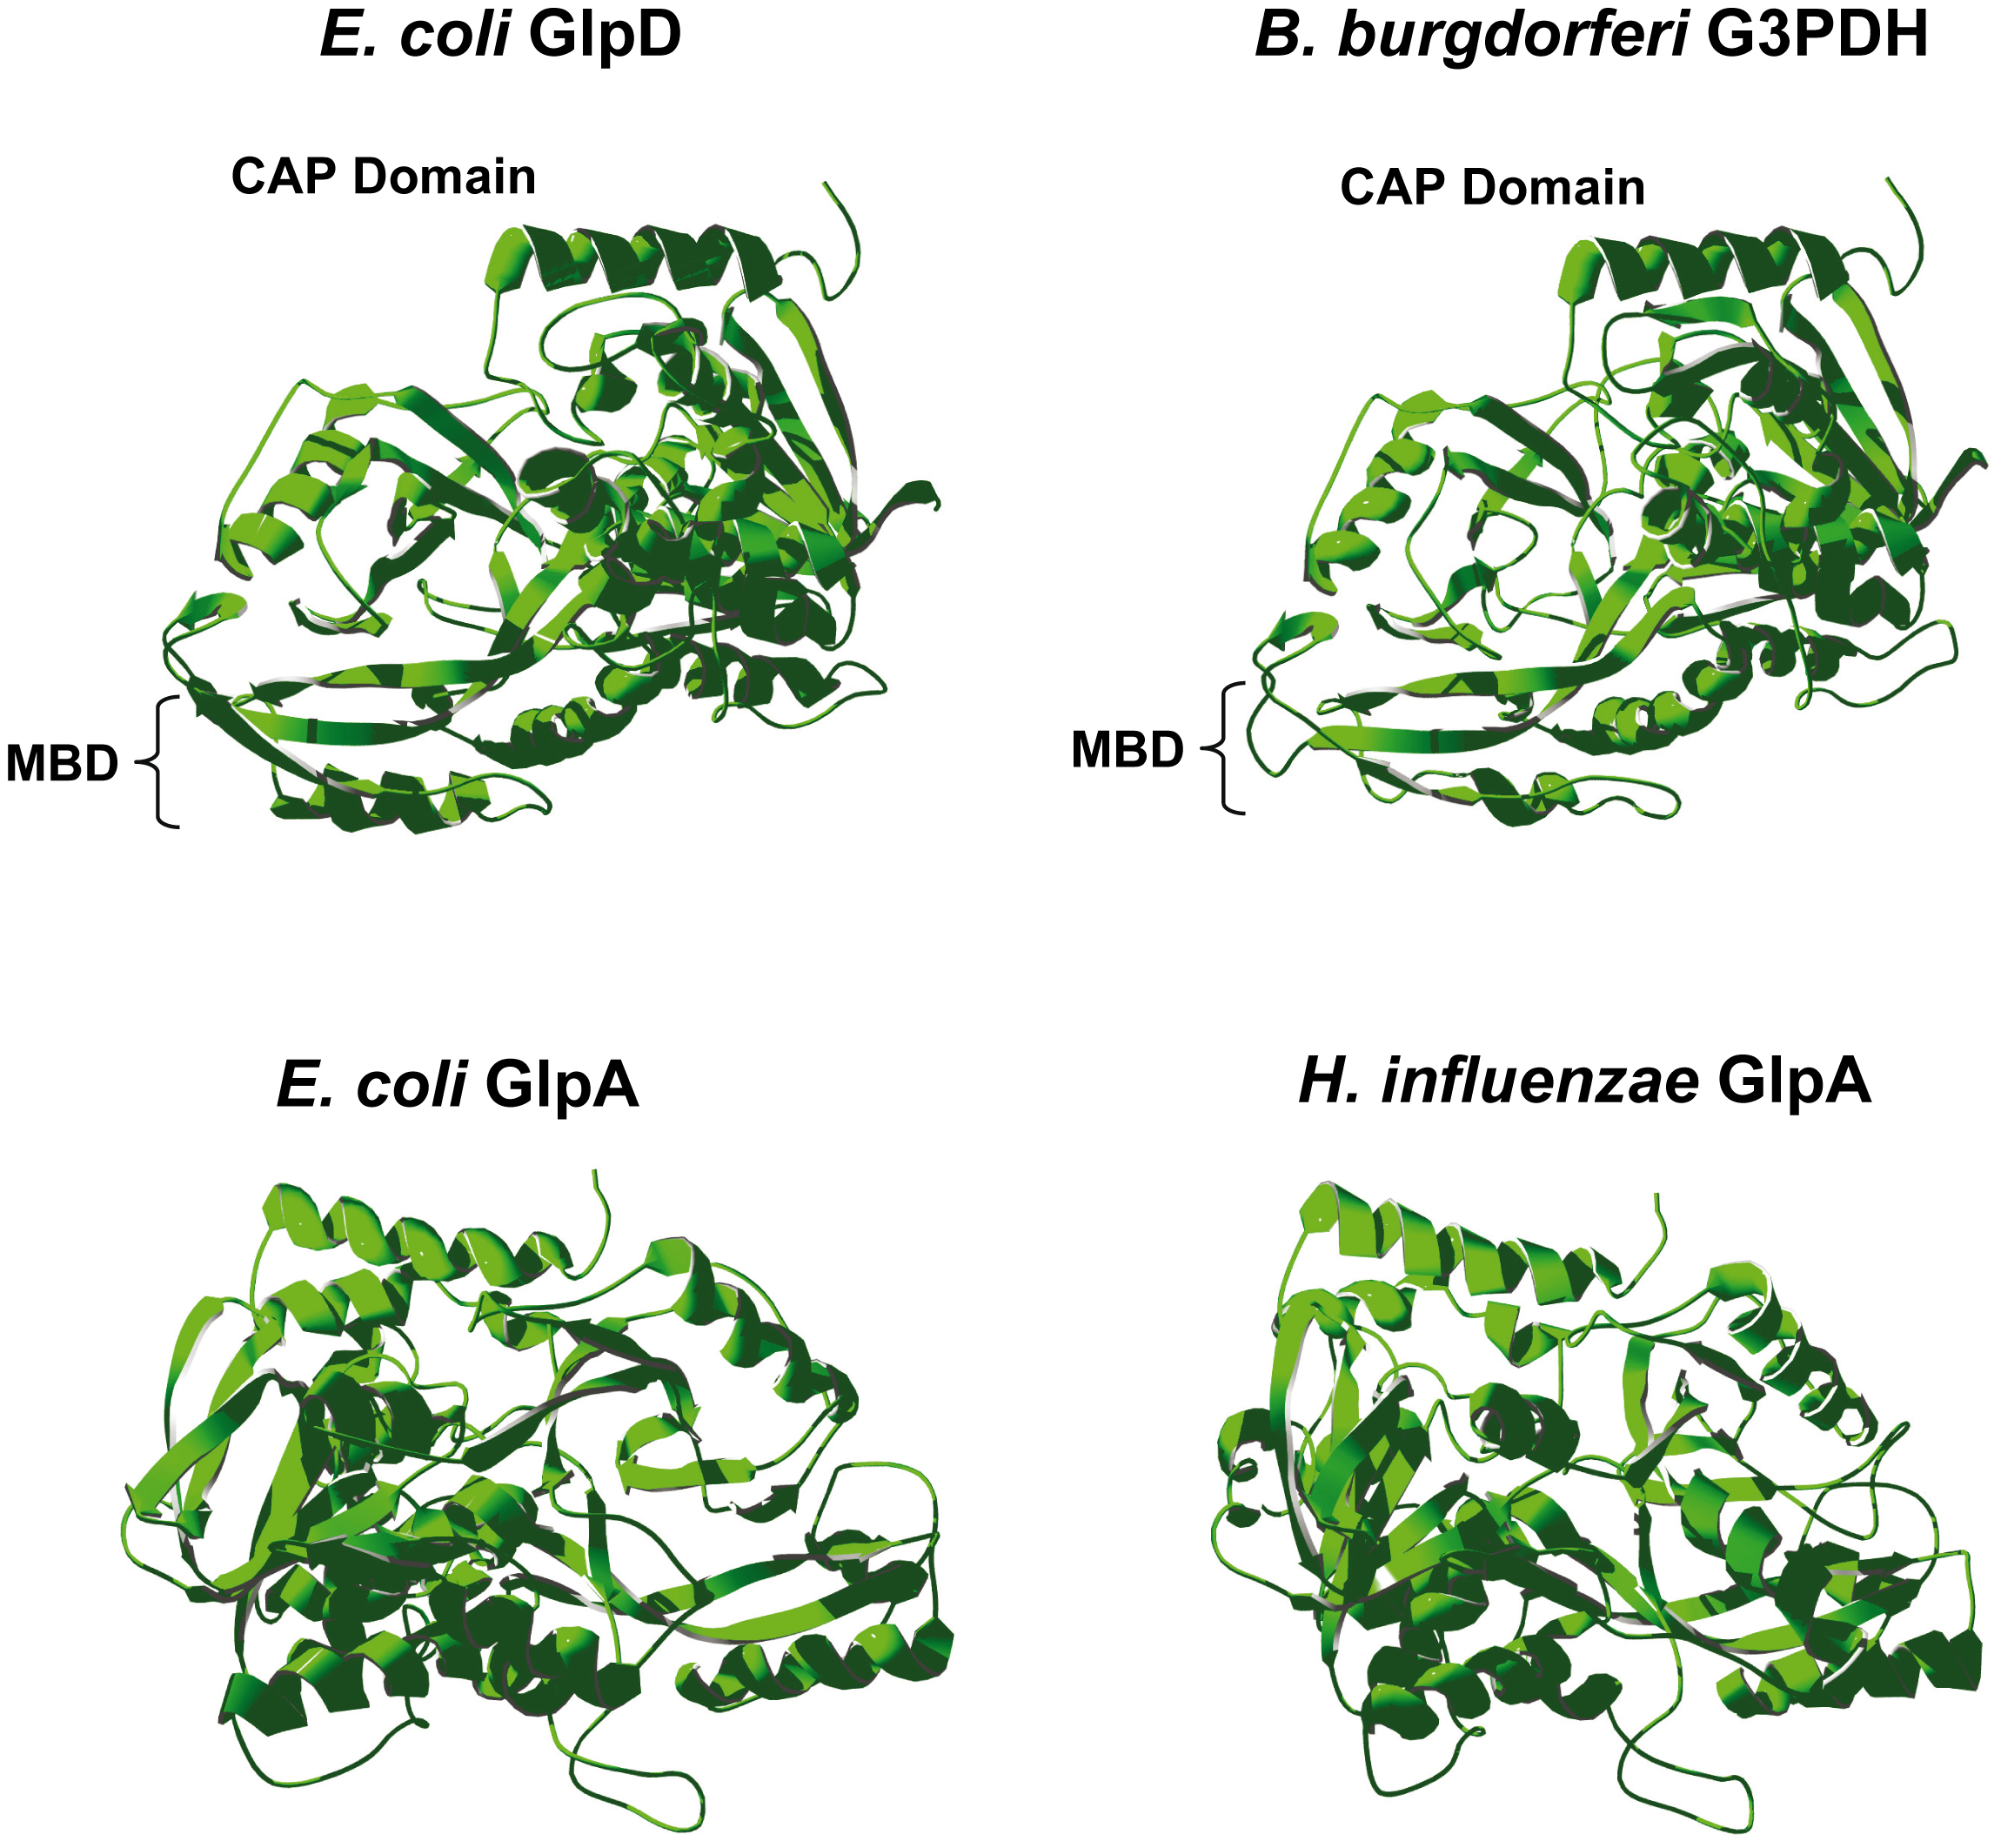 Predicted tertiary structure of <i>B. burgdorferi</i> G3PDH.